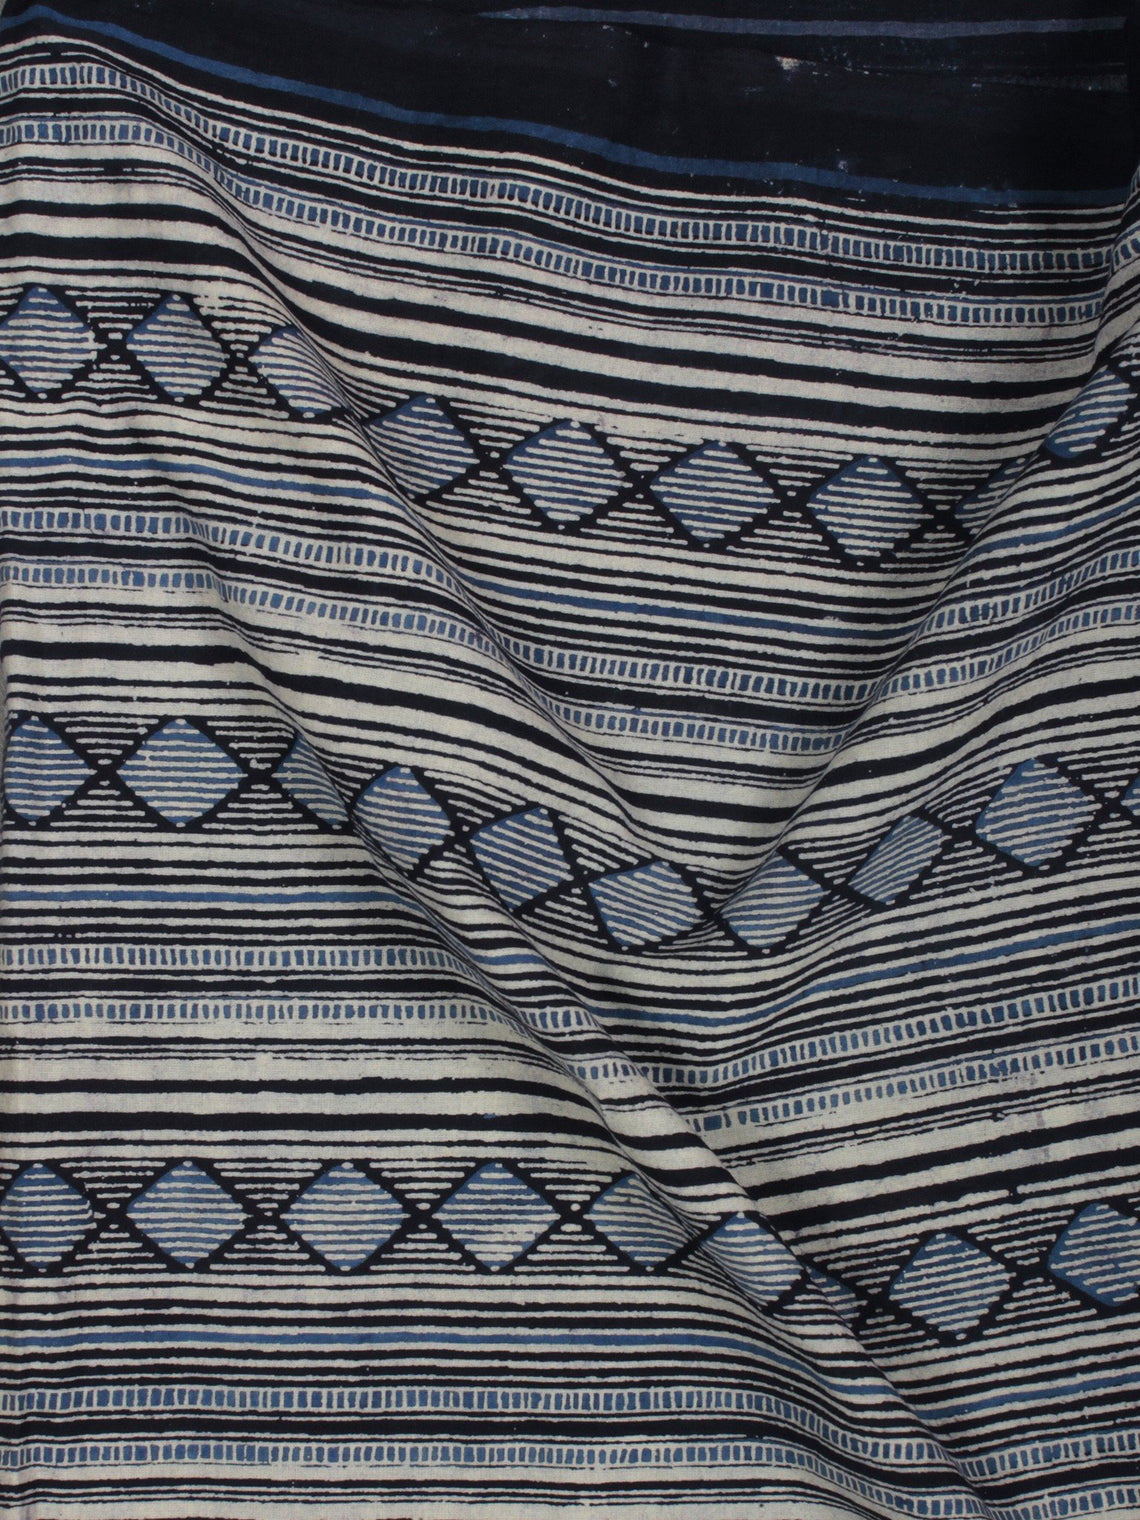 Indigo Black Ivory Ajrakh Block Printed Cotton Fabric Per Meter - F003F847